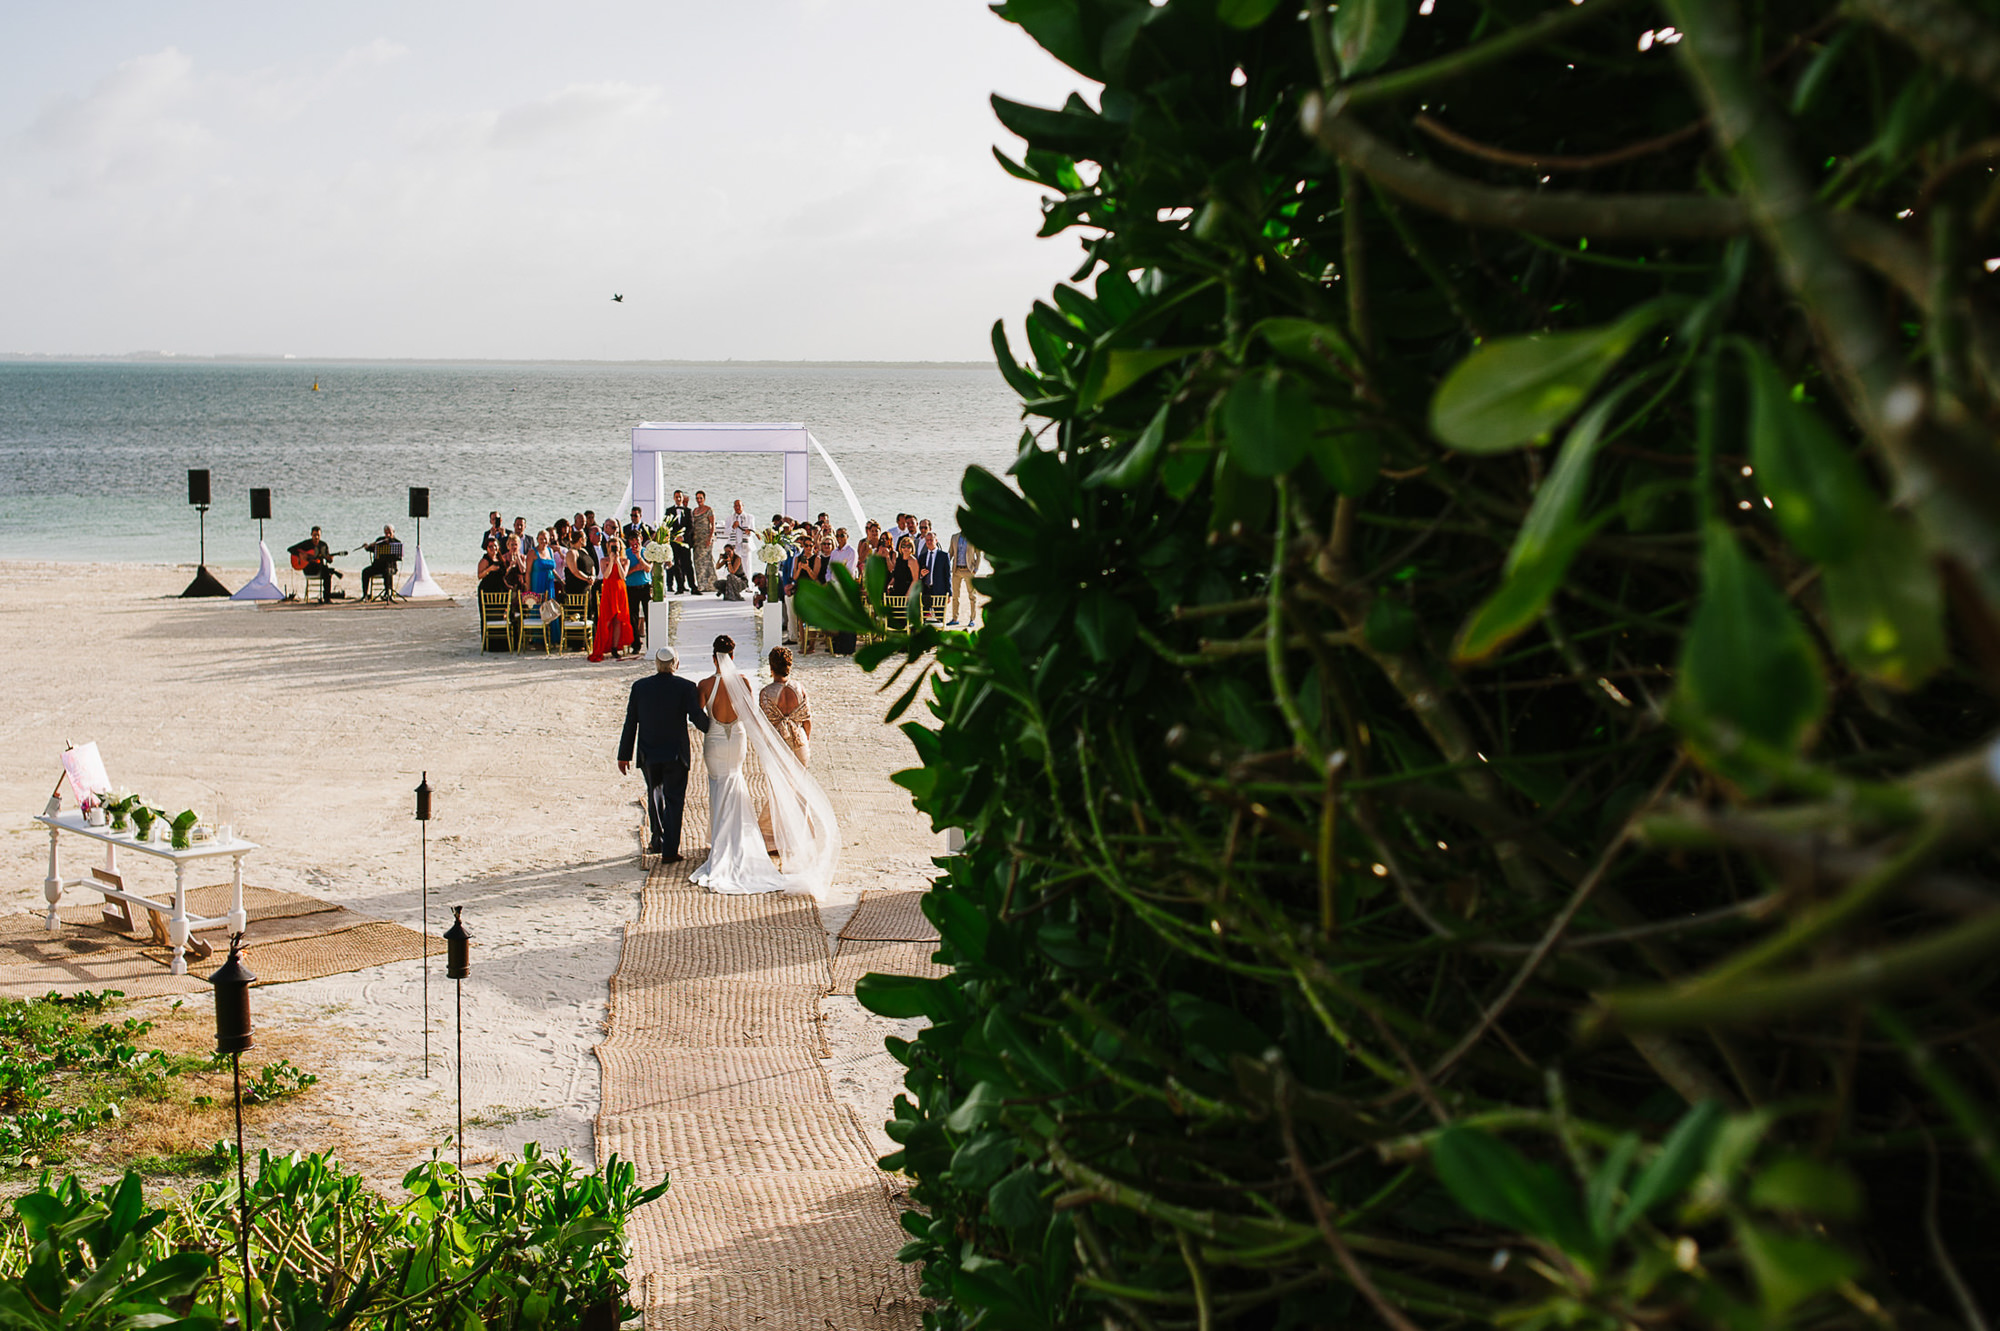 bride-walked-by-clients-to-ceremony-on-the-beach-worlds-best-wedding-photos-citlalli-rico-mexico-wedding-photographers